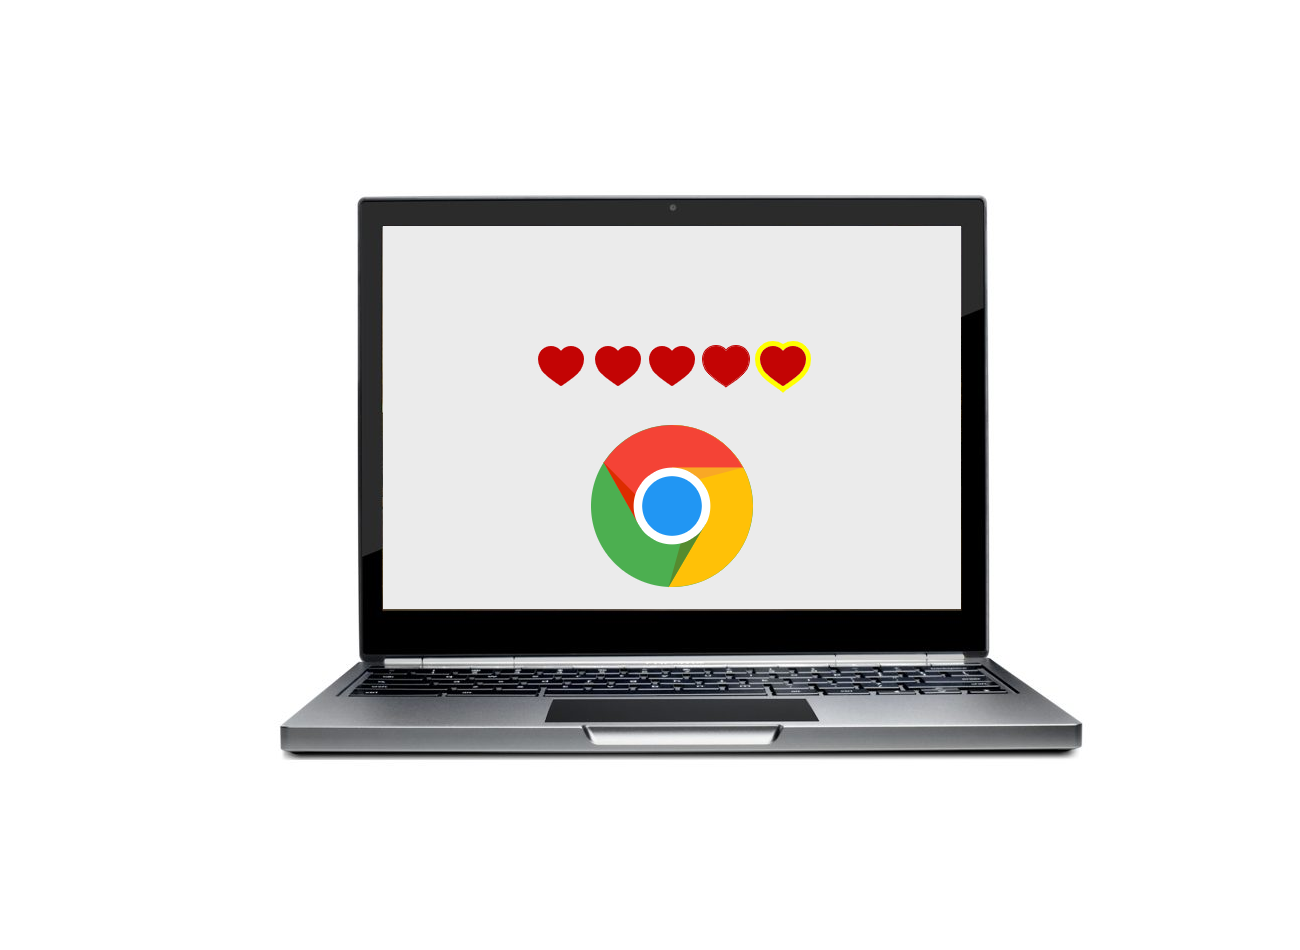 Google breathes new life into more than 100 Chromebook models new and old